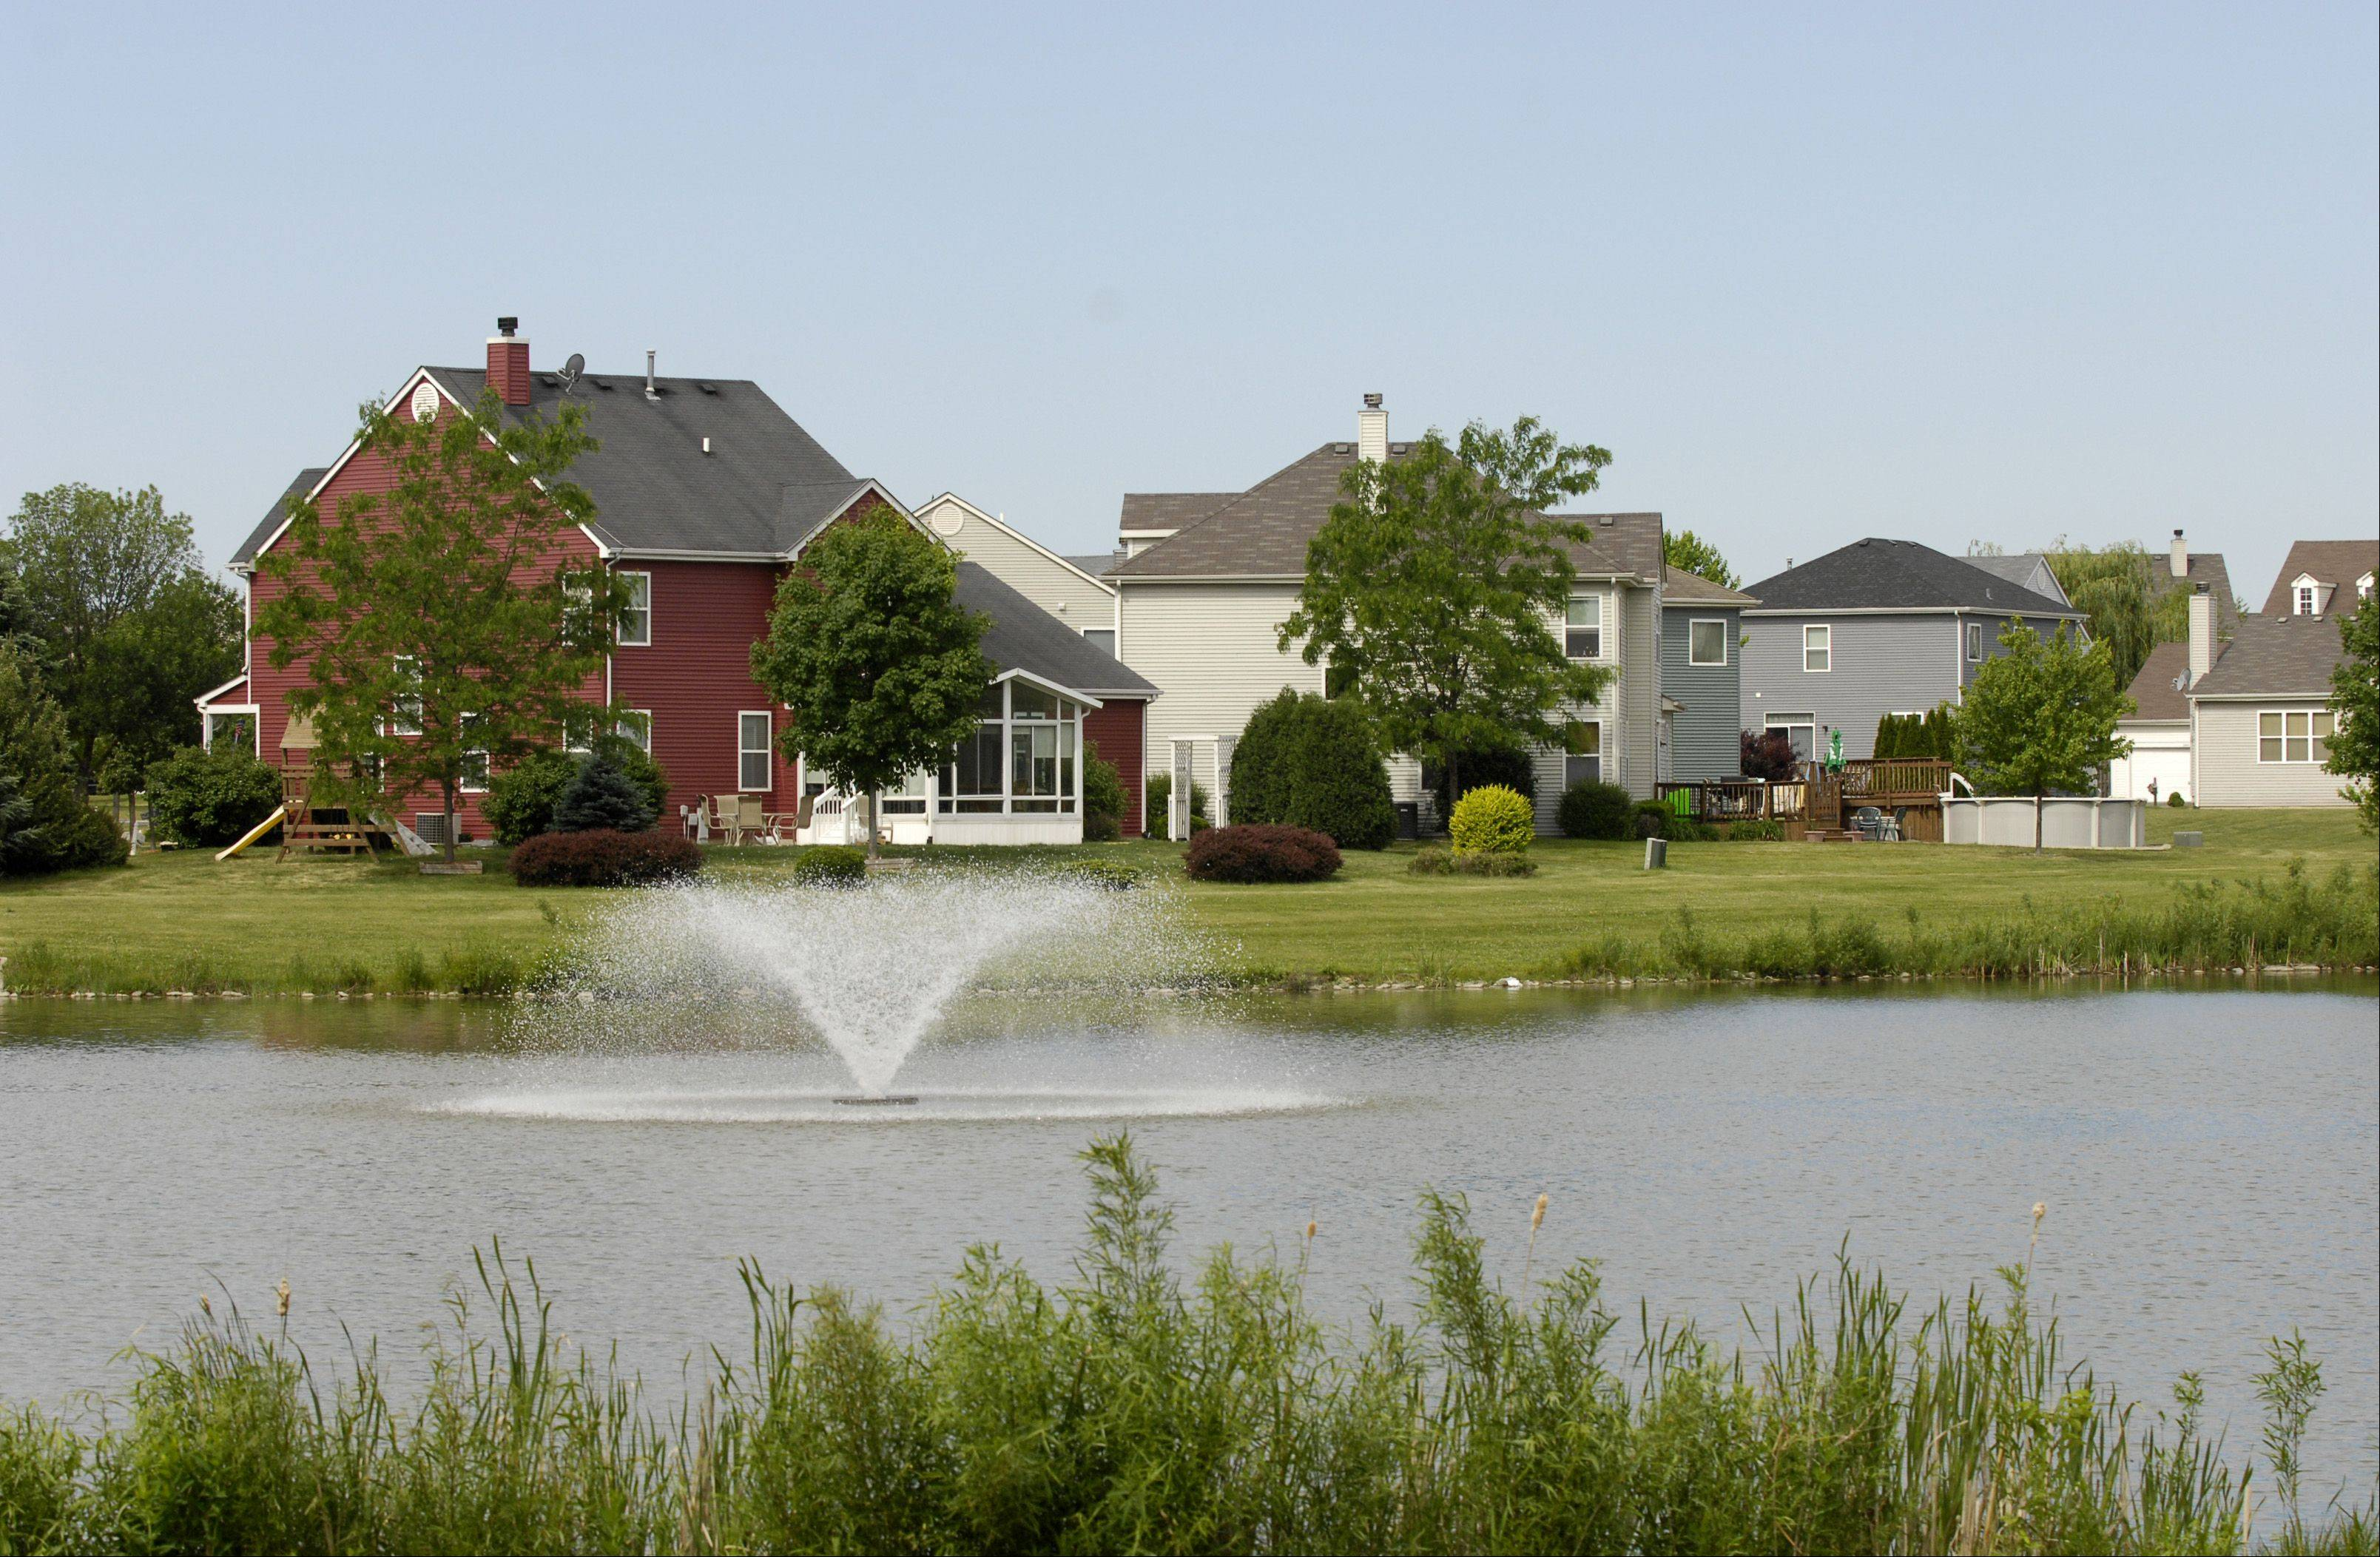 The Cornerstone Lakes subdivision in West Chicago features a parklike setting with maturing trees and two lakes.